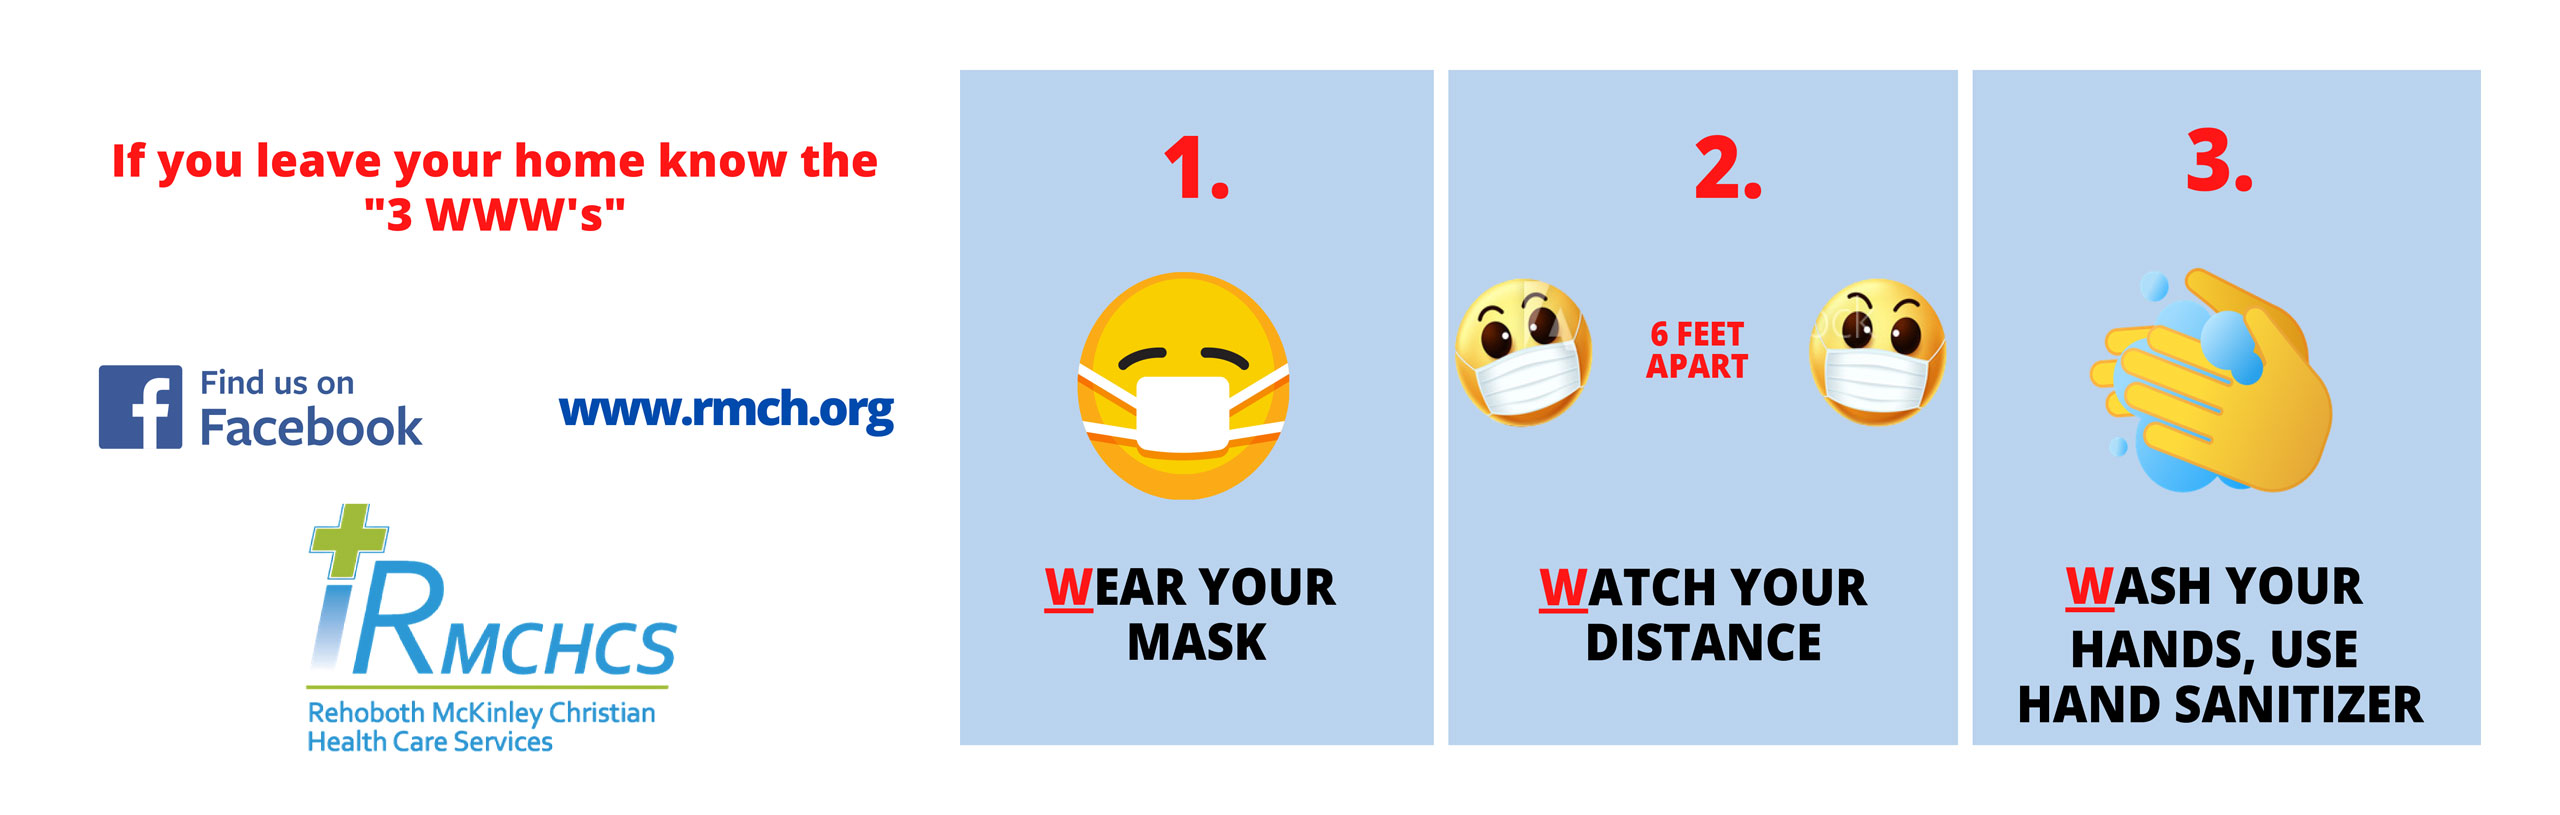 If you leave your home know the 3 WWW's. Wear your mask Watch your distance and wash your hands use hand sanitizer.